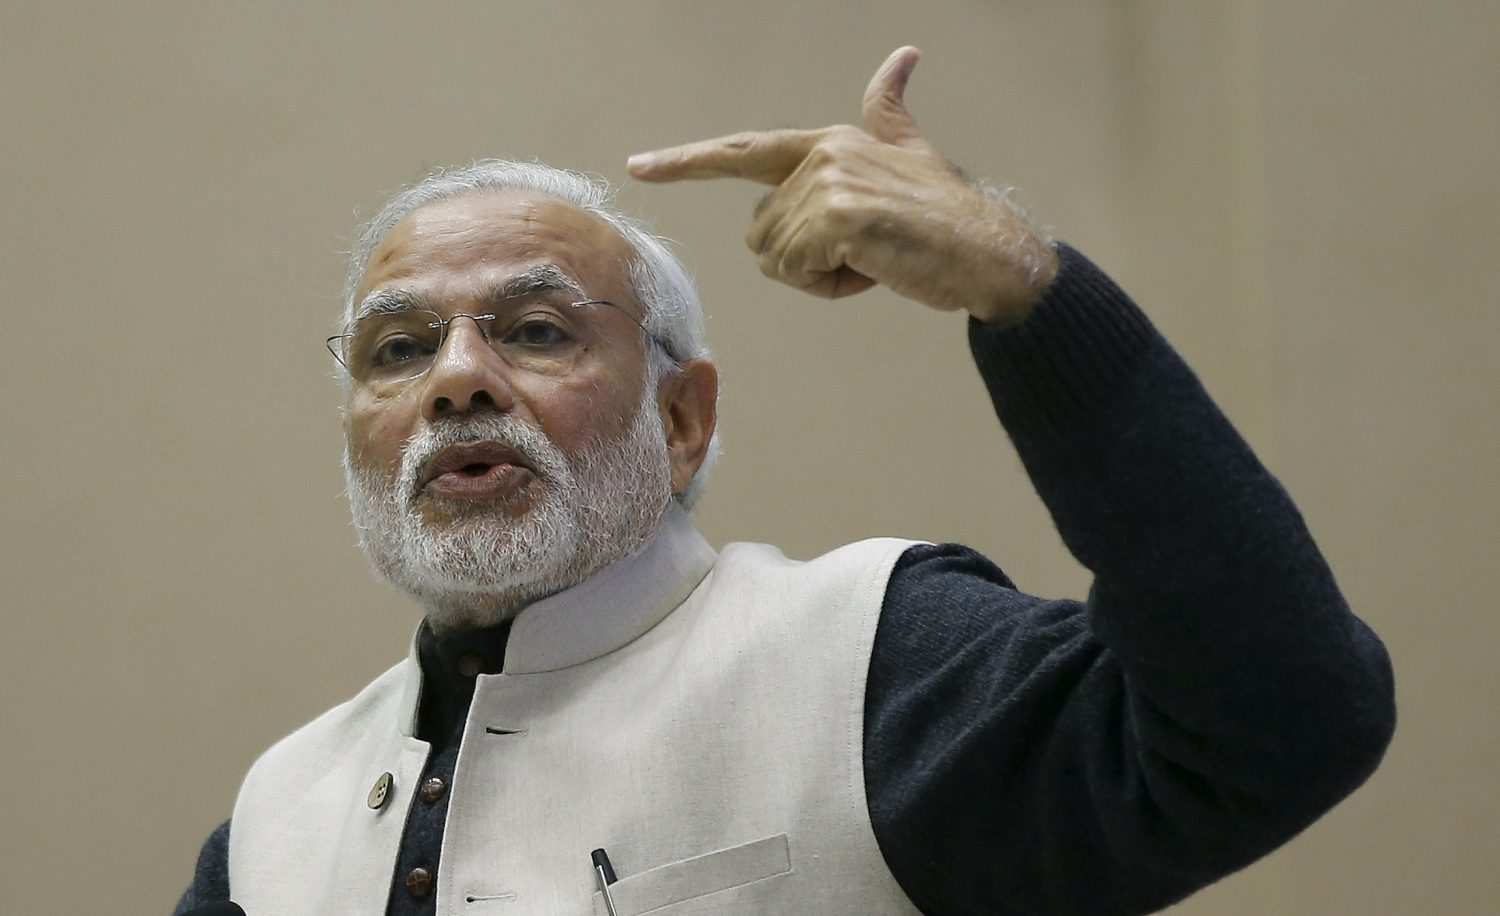 India's Prime Minister Narendra Modi gestures as he addresses a gathering during a conference of start-up businesses in New Delhi, India, January 16, 2016. Indian Prime Minister Modi launched a number of initiatives on Saturday to support the country's start-ups, including a 100 billion rupee ($1.5 billion) fund and a string of tax breaks for both the companies and their investors. REUTERS/Adnan Abidi - RTX22ONI